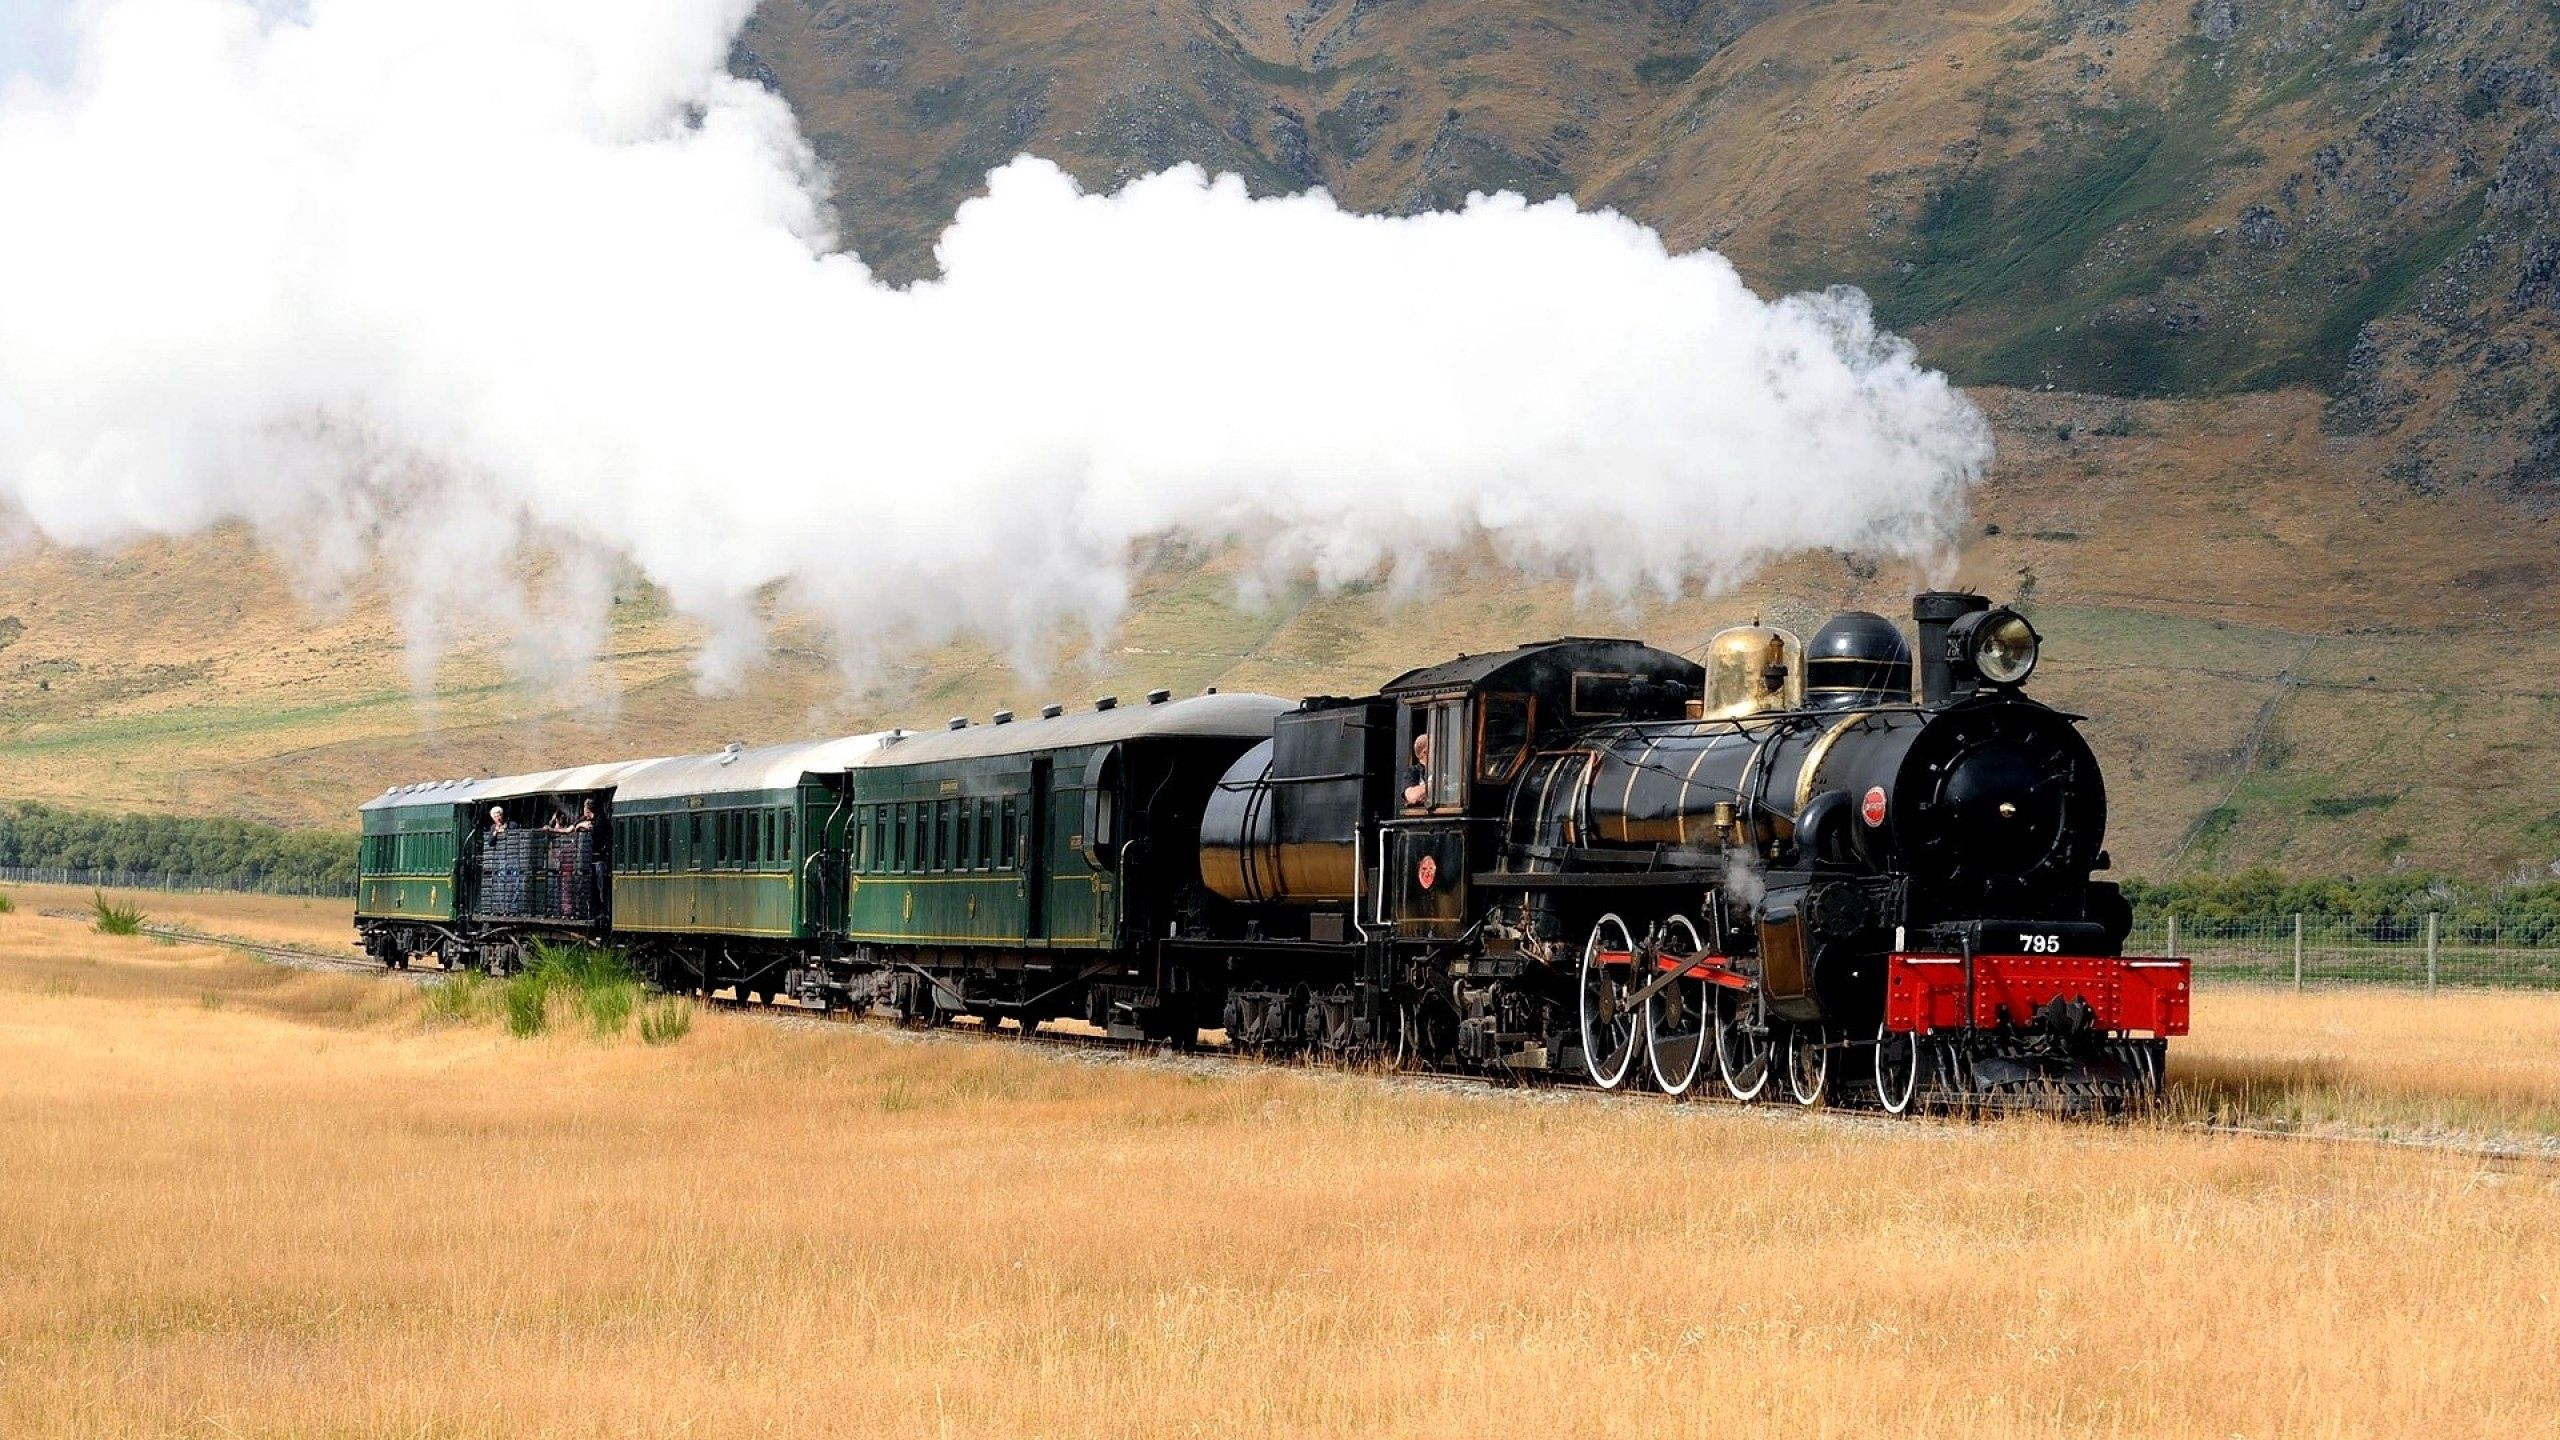 68946 download wallpaper Miscellanea, Miscellaneous, Locomotive, Train, Smoke screensavers and pictures for free